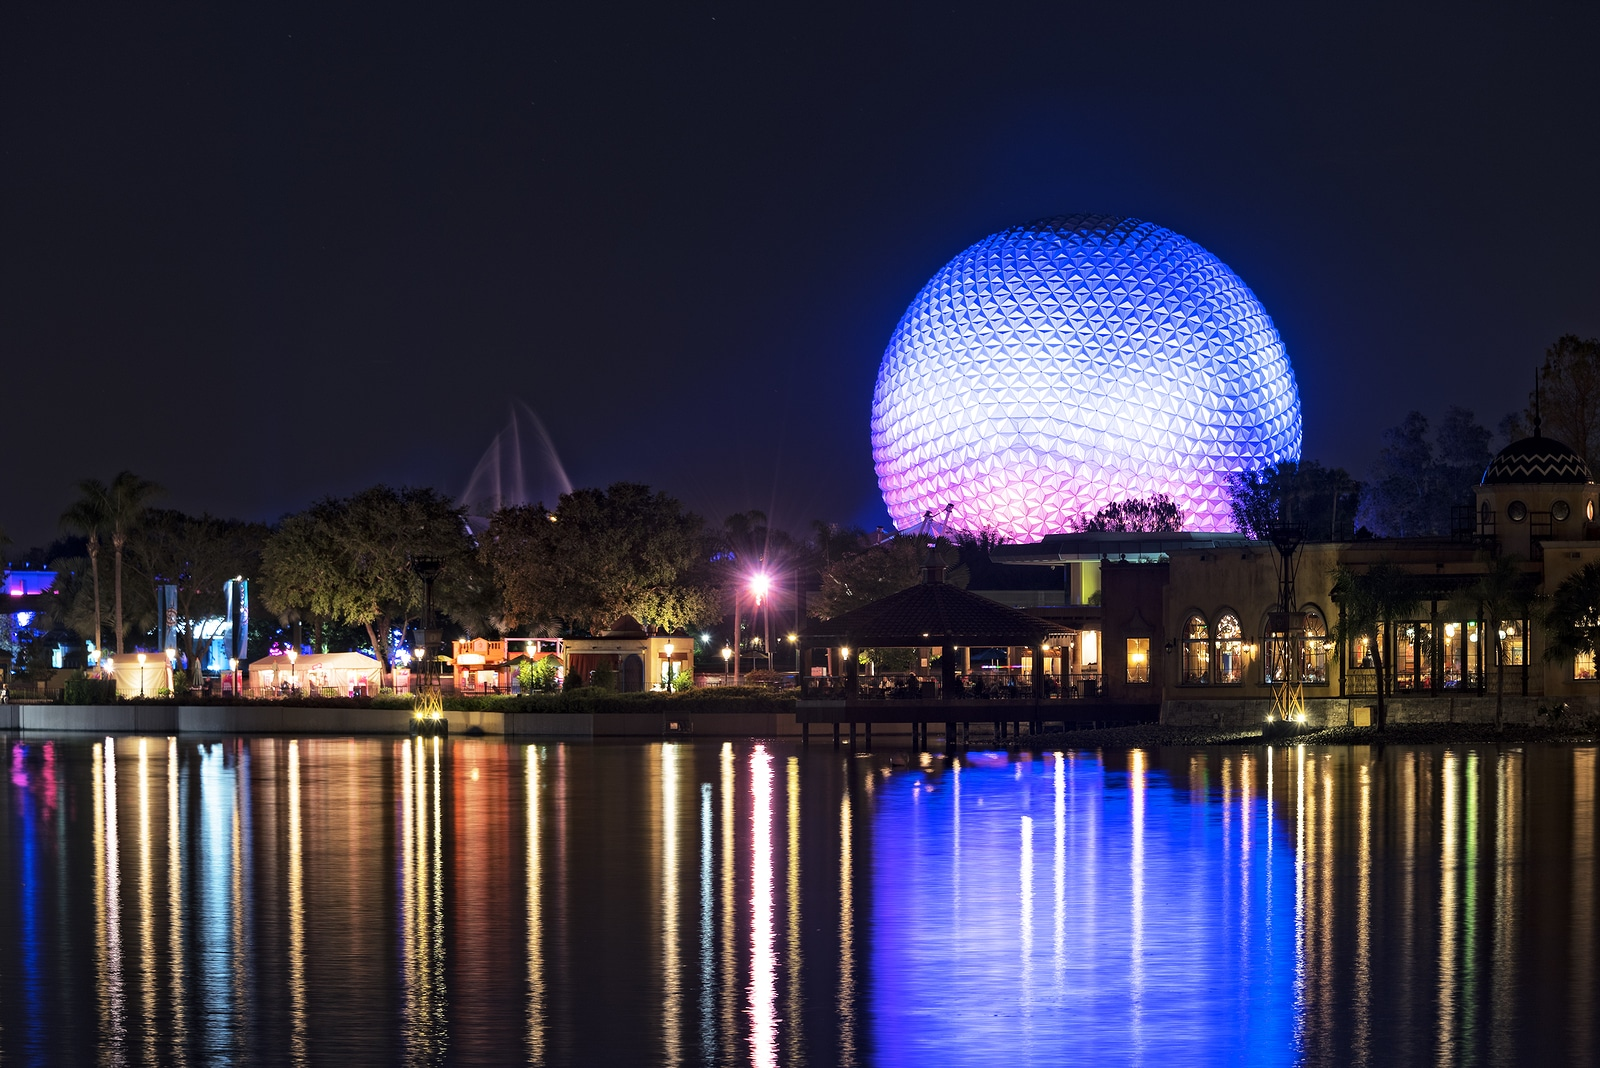 The Spaceship Earth Sphere at Epcot Center